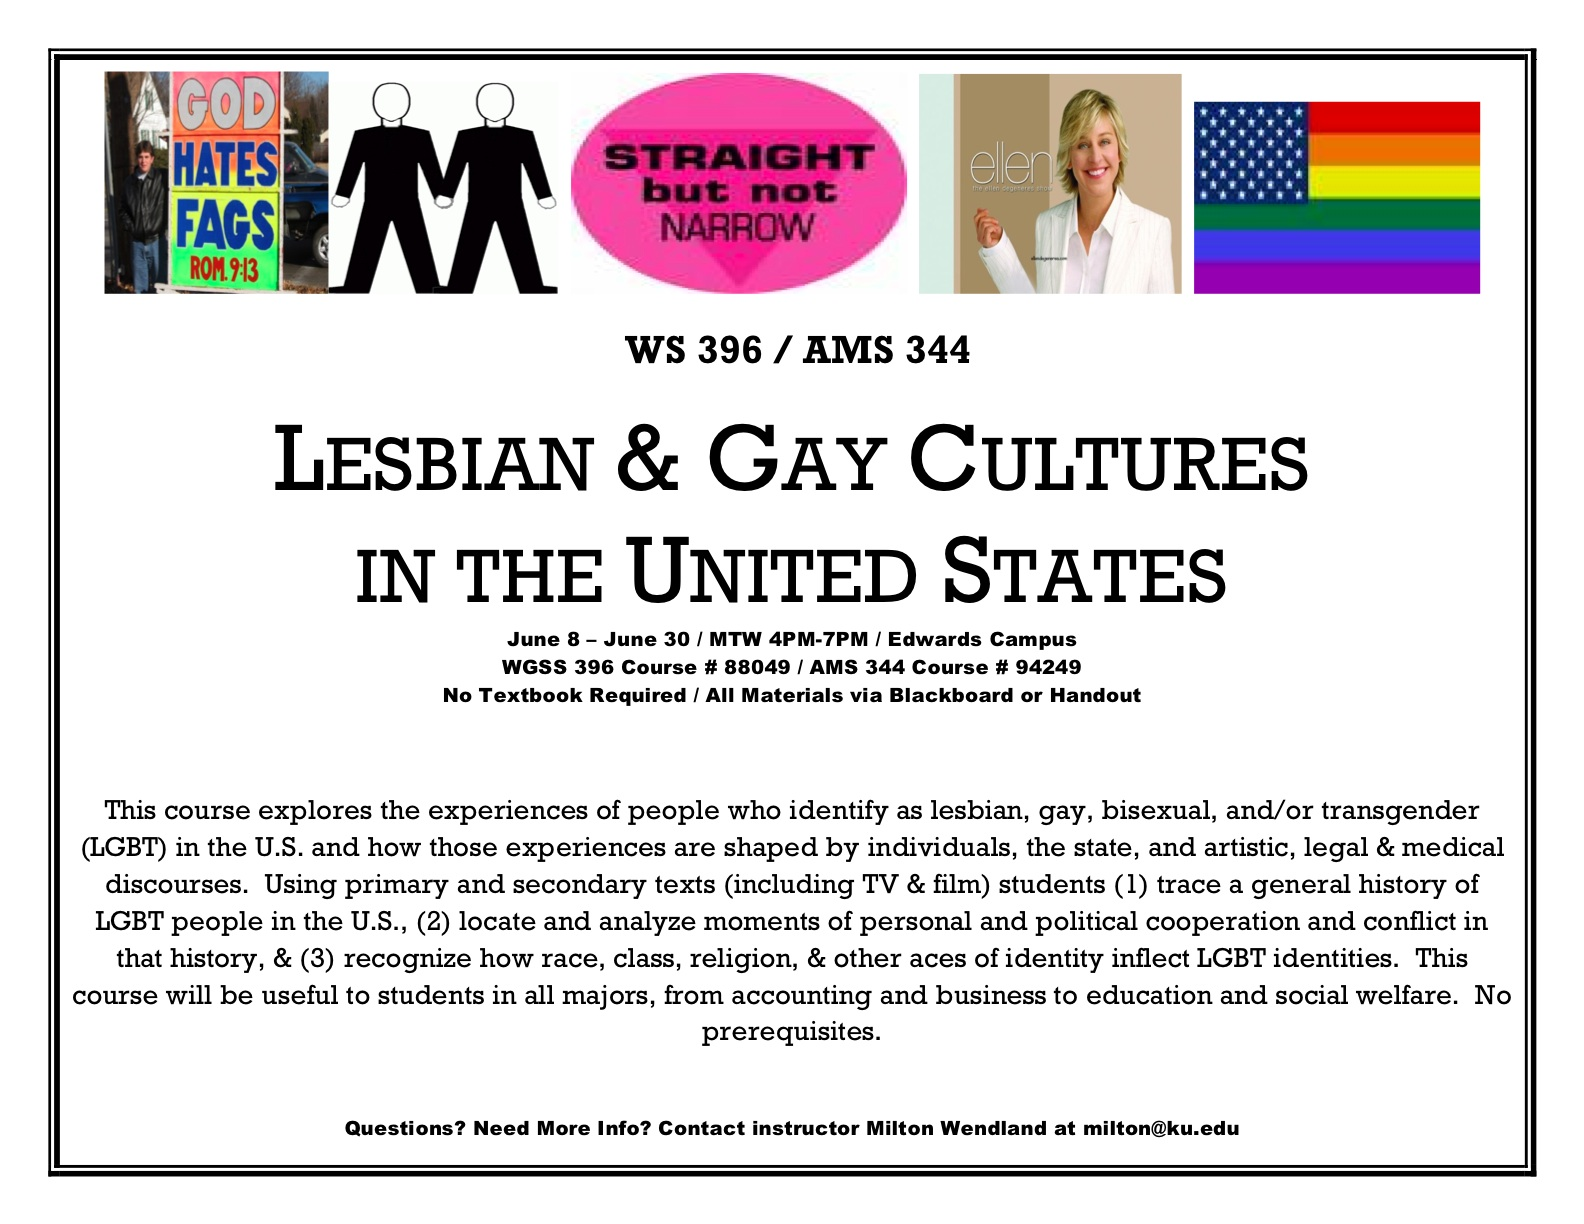 women s gender and sexuality studies cross cultural Women's studies is closely related to the fields of gender studies, feminist studies, and sexuality studies, and more broadly related to the fields of cultural studies, ethnic studies, and african-american studies.